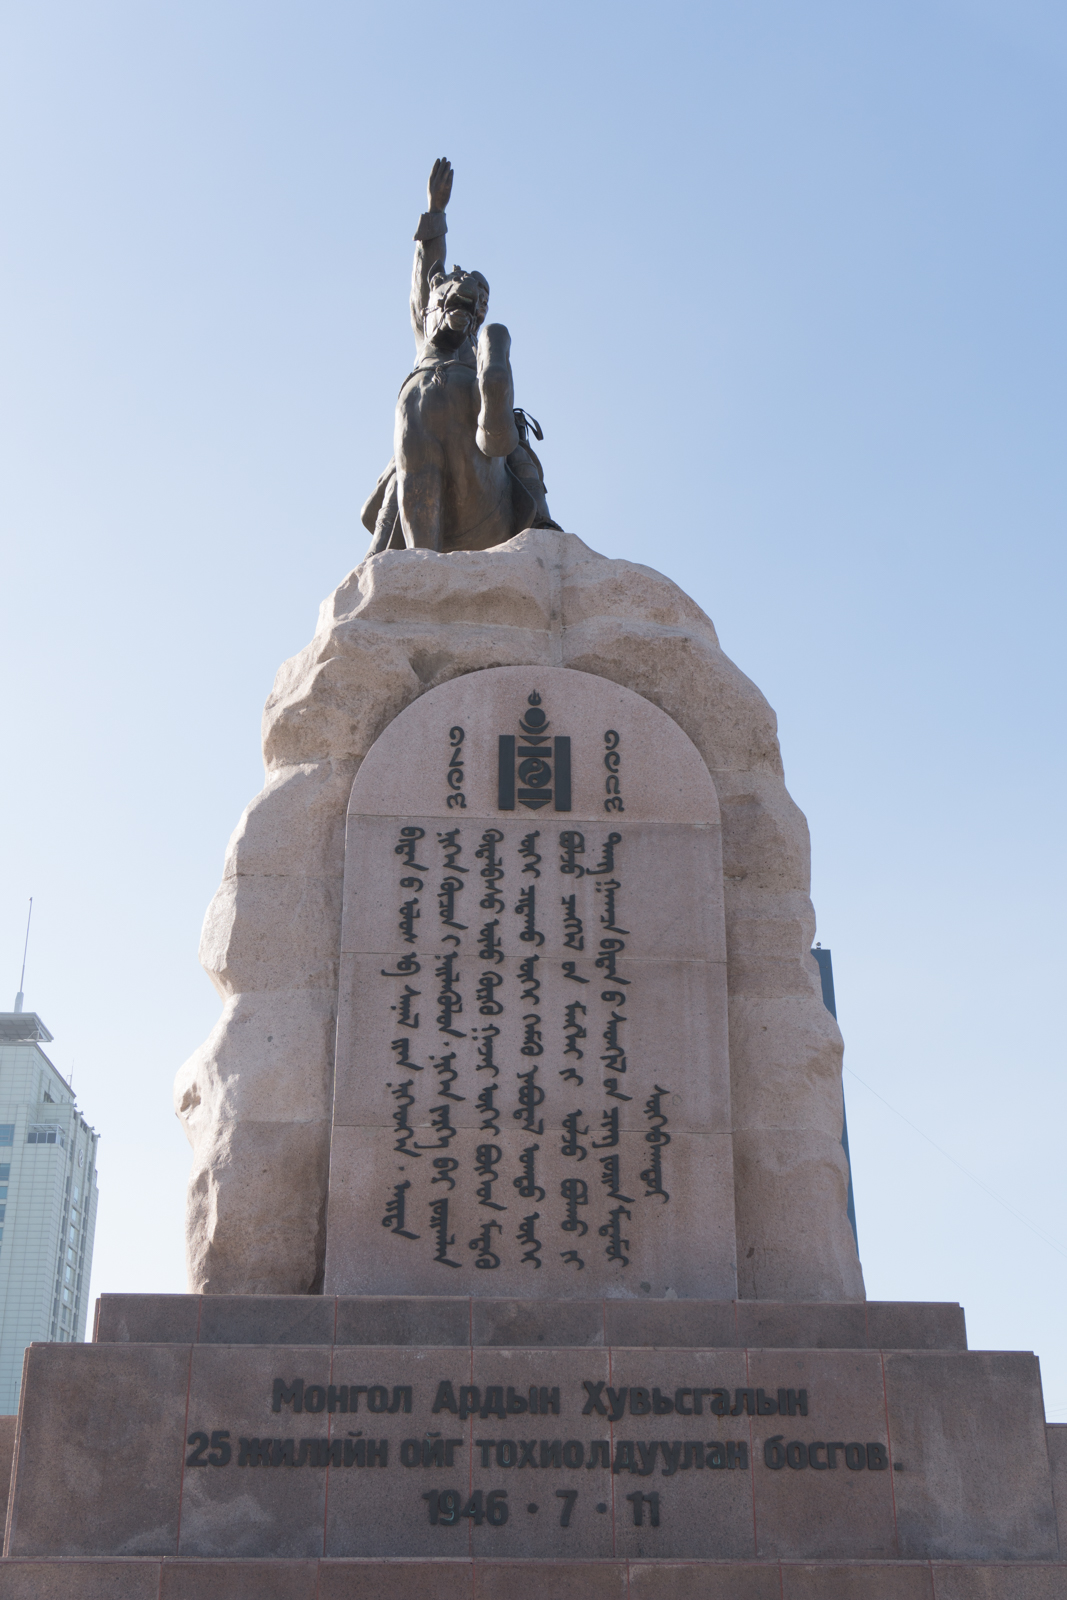 Monument in Ulan Bataar with Mongolian writing underneath